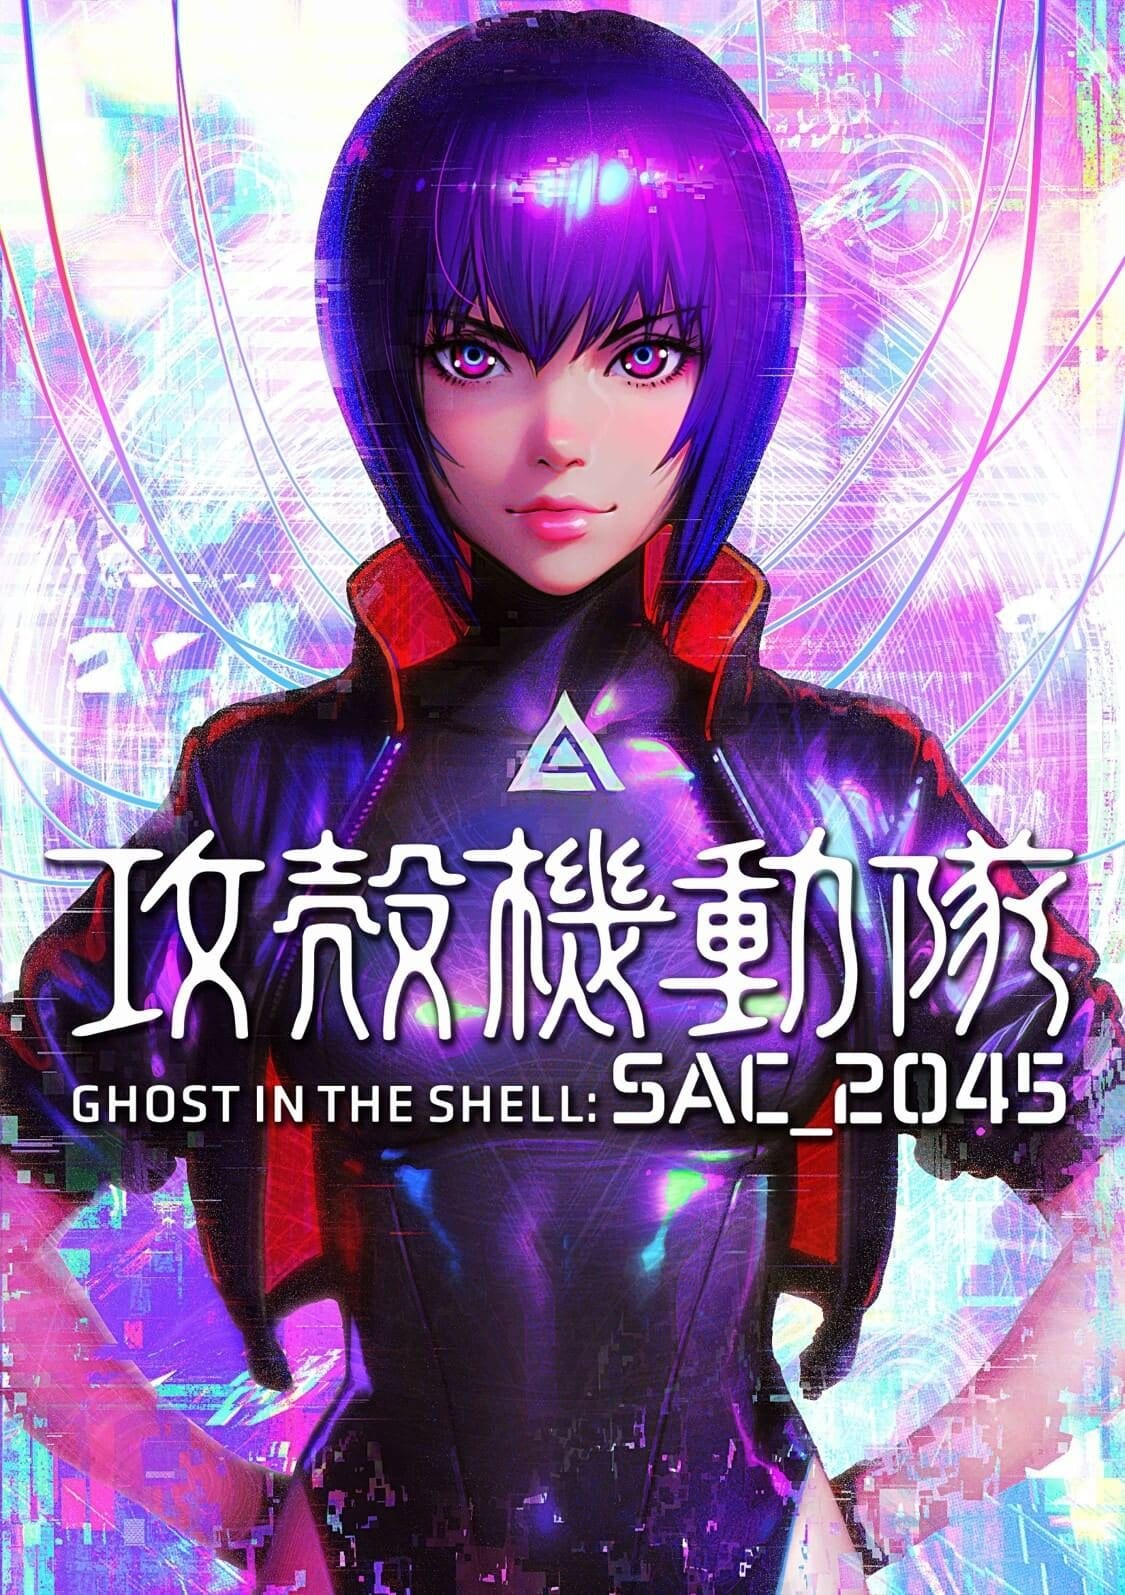 Ghost in the shell 2021 movie